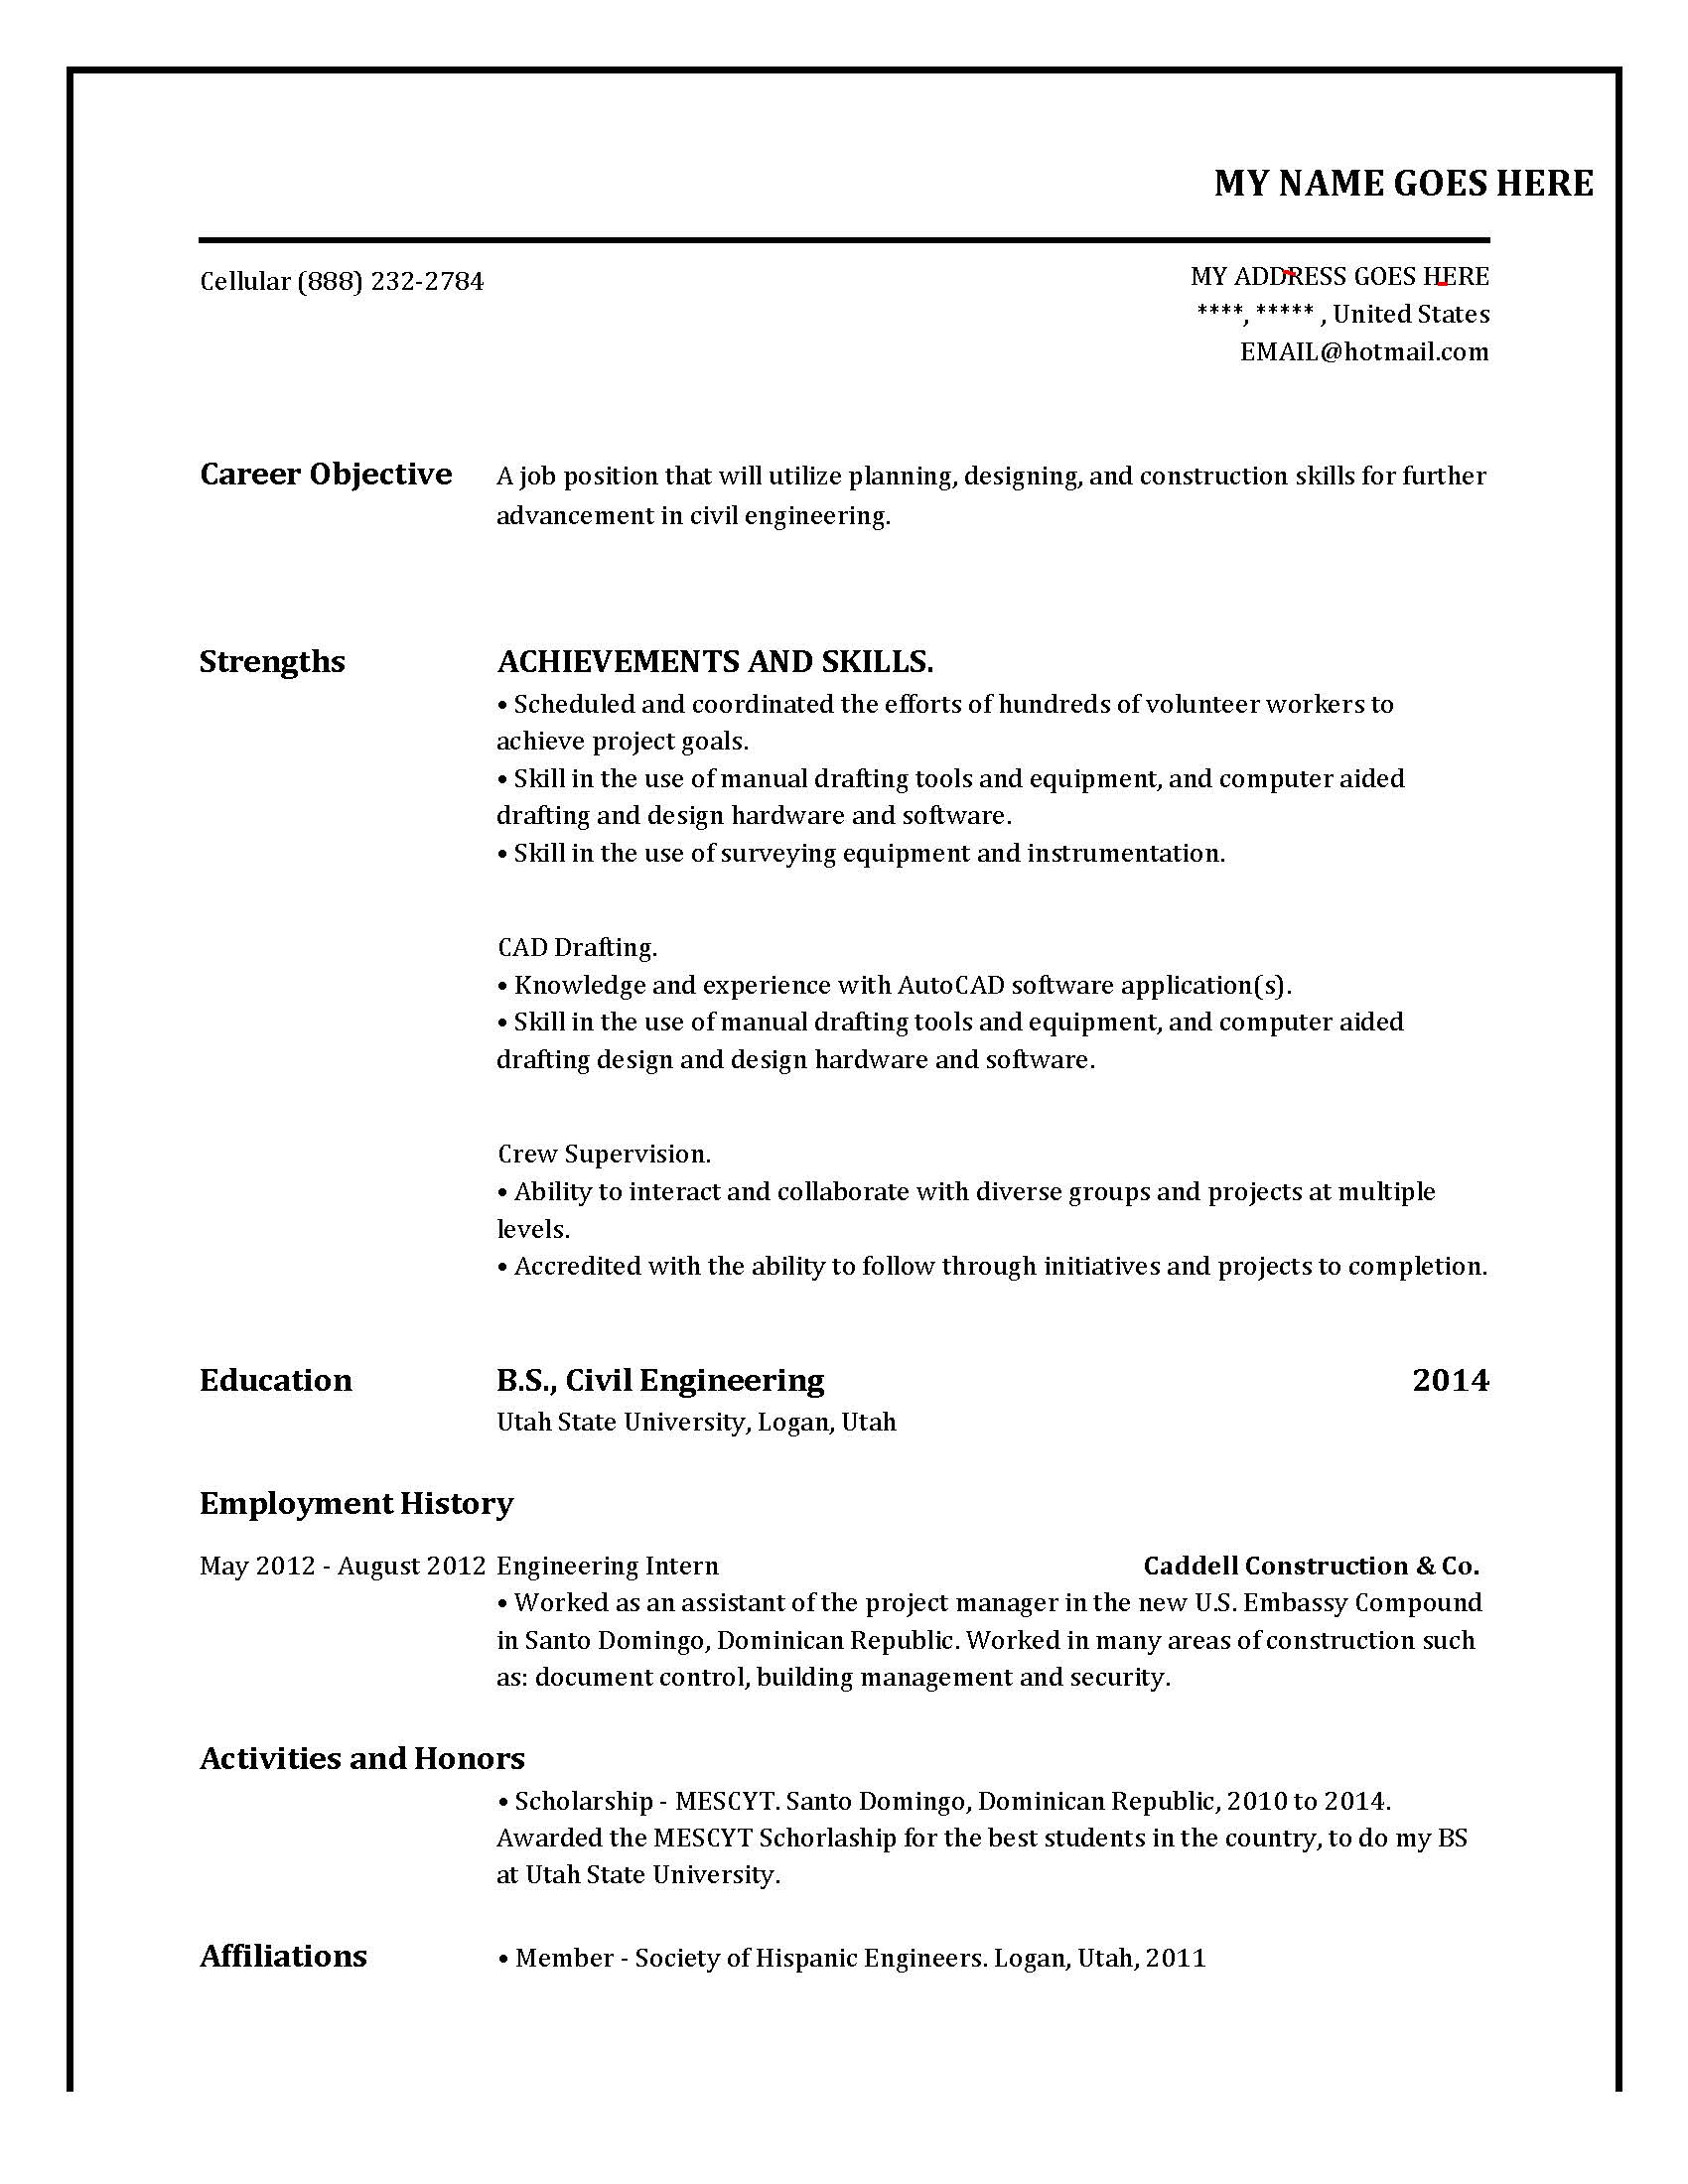 writing my first resume